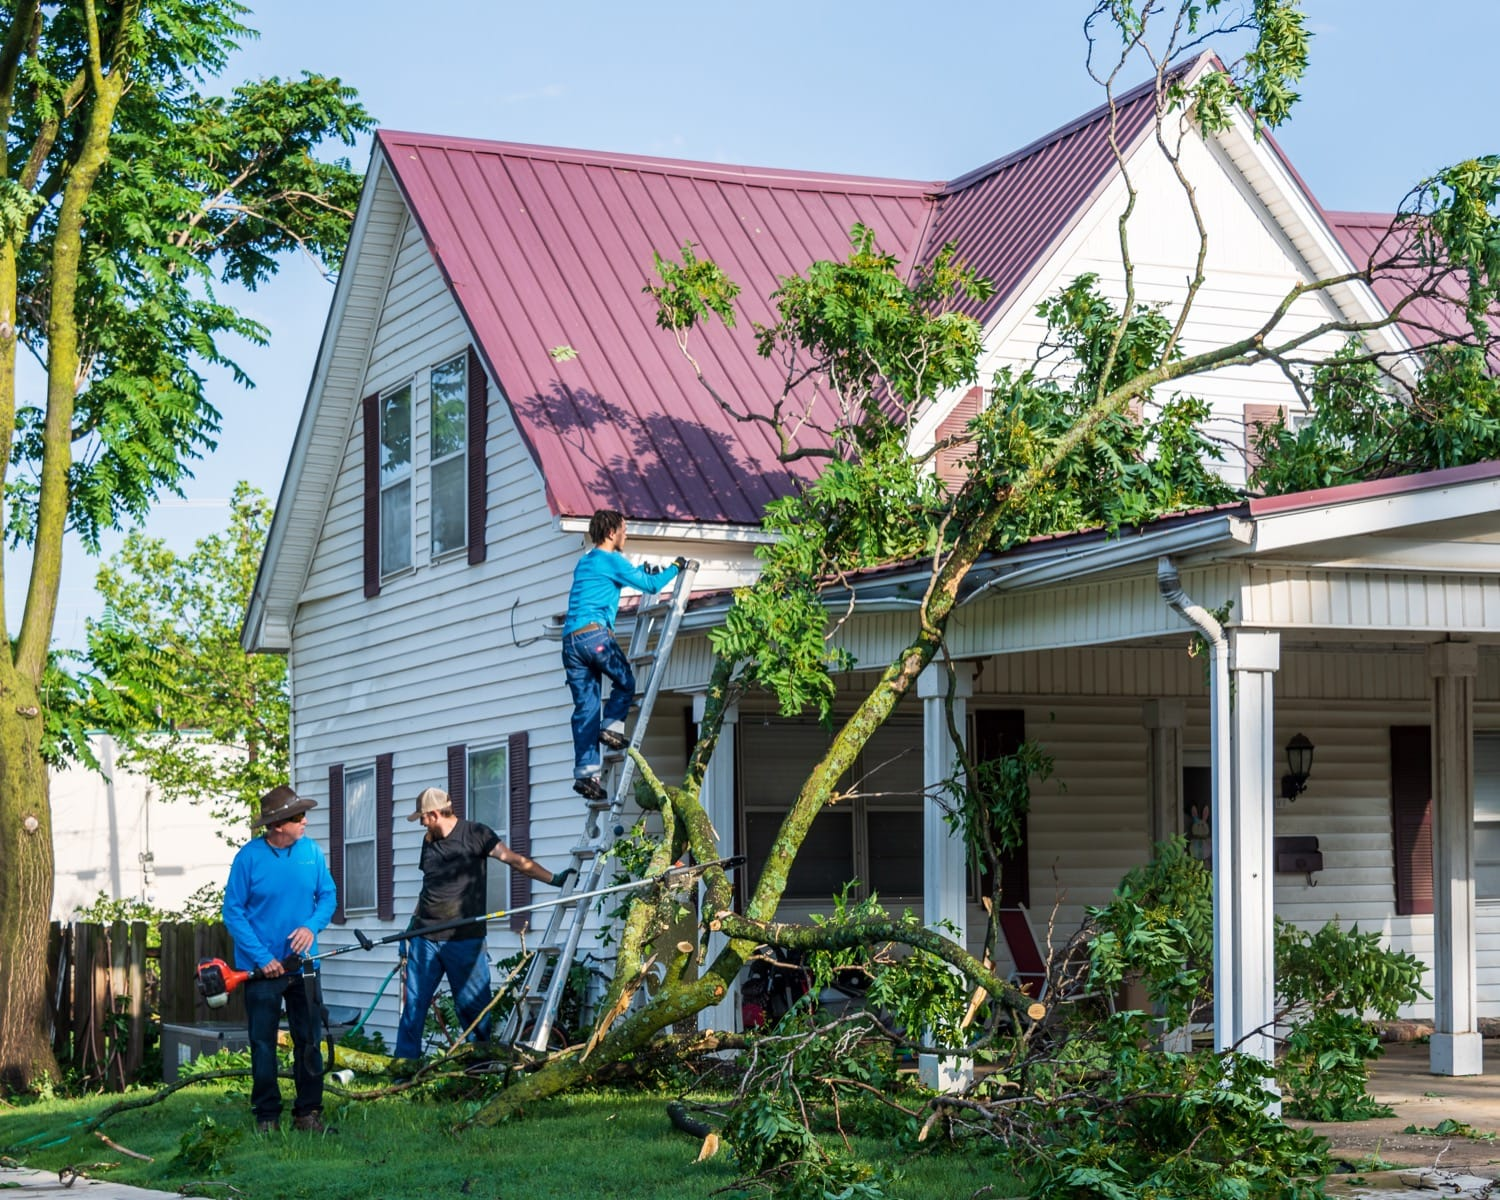 Residents of a Sapulpa home work to remove debris from the roof.